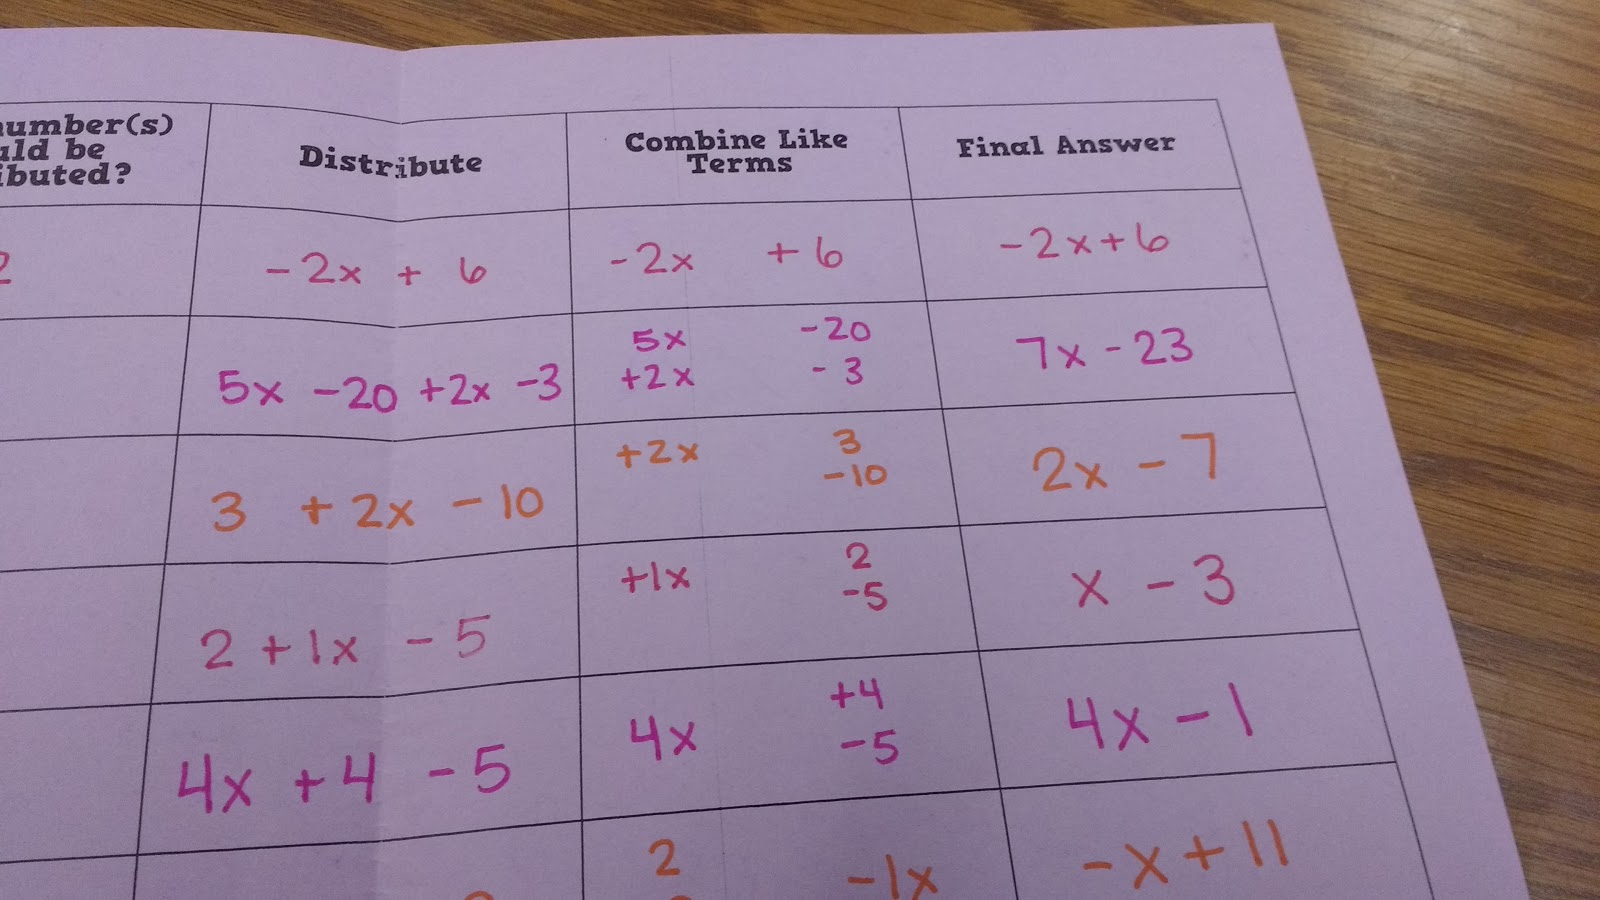 worksheet Worksheet Combining Like Terms math love combining like terms and the distributive property when we start back on monday i want to give students equations inequalities that have parentheses be combined i